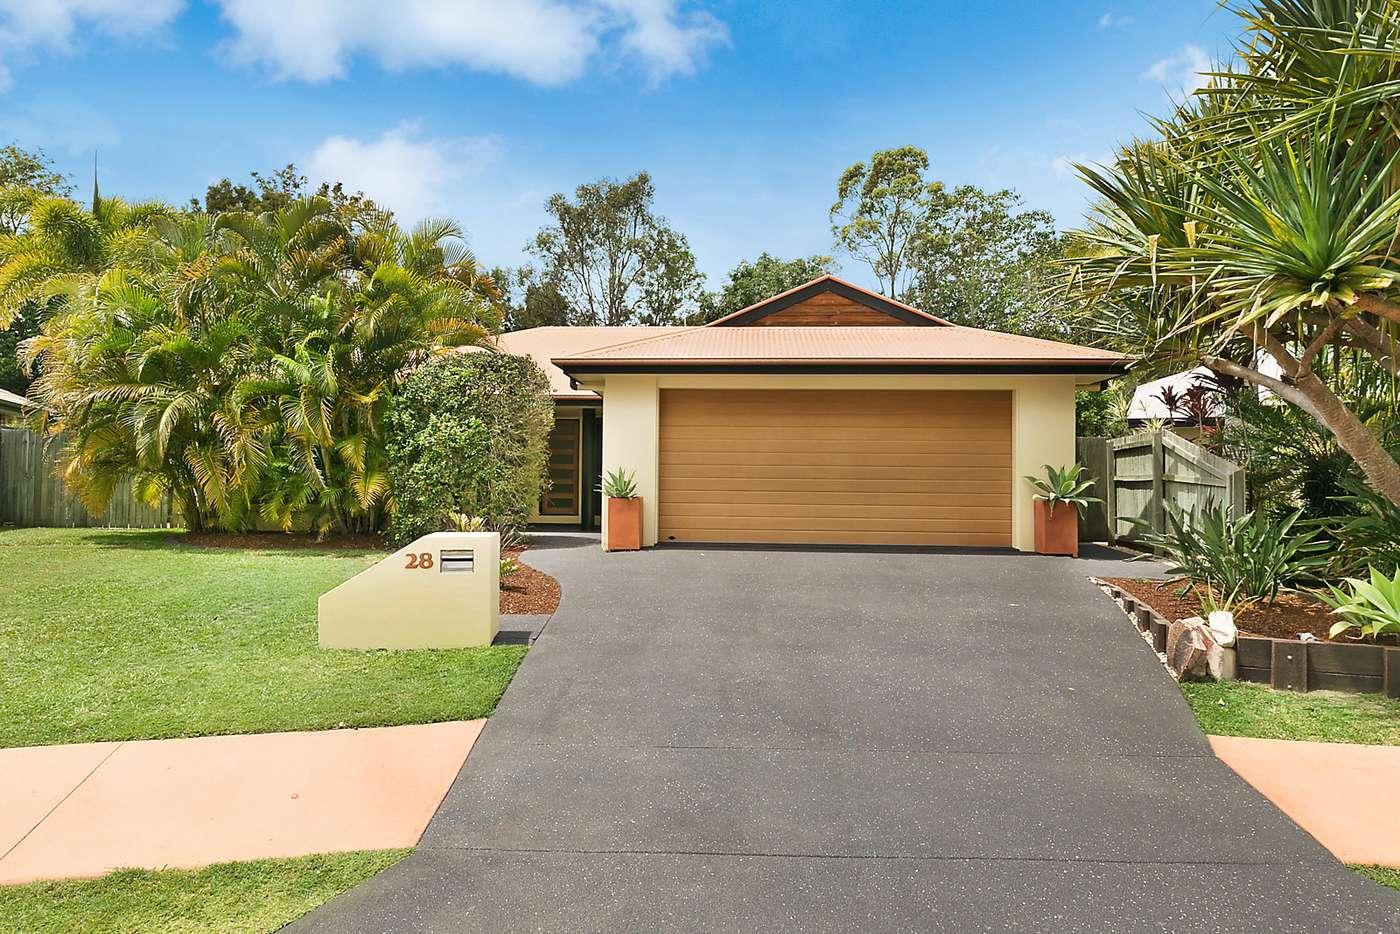 Main view of Homely house listing, 28 Rainsford Place, Buderim QLD 4556